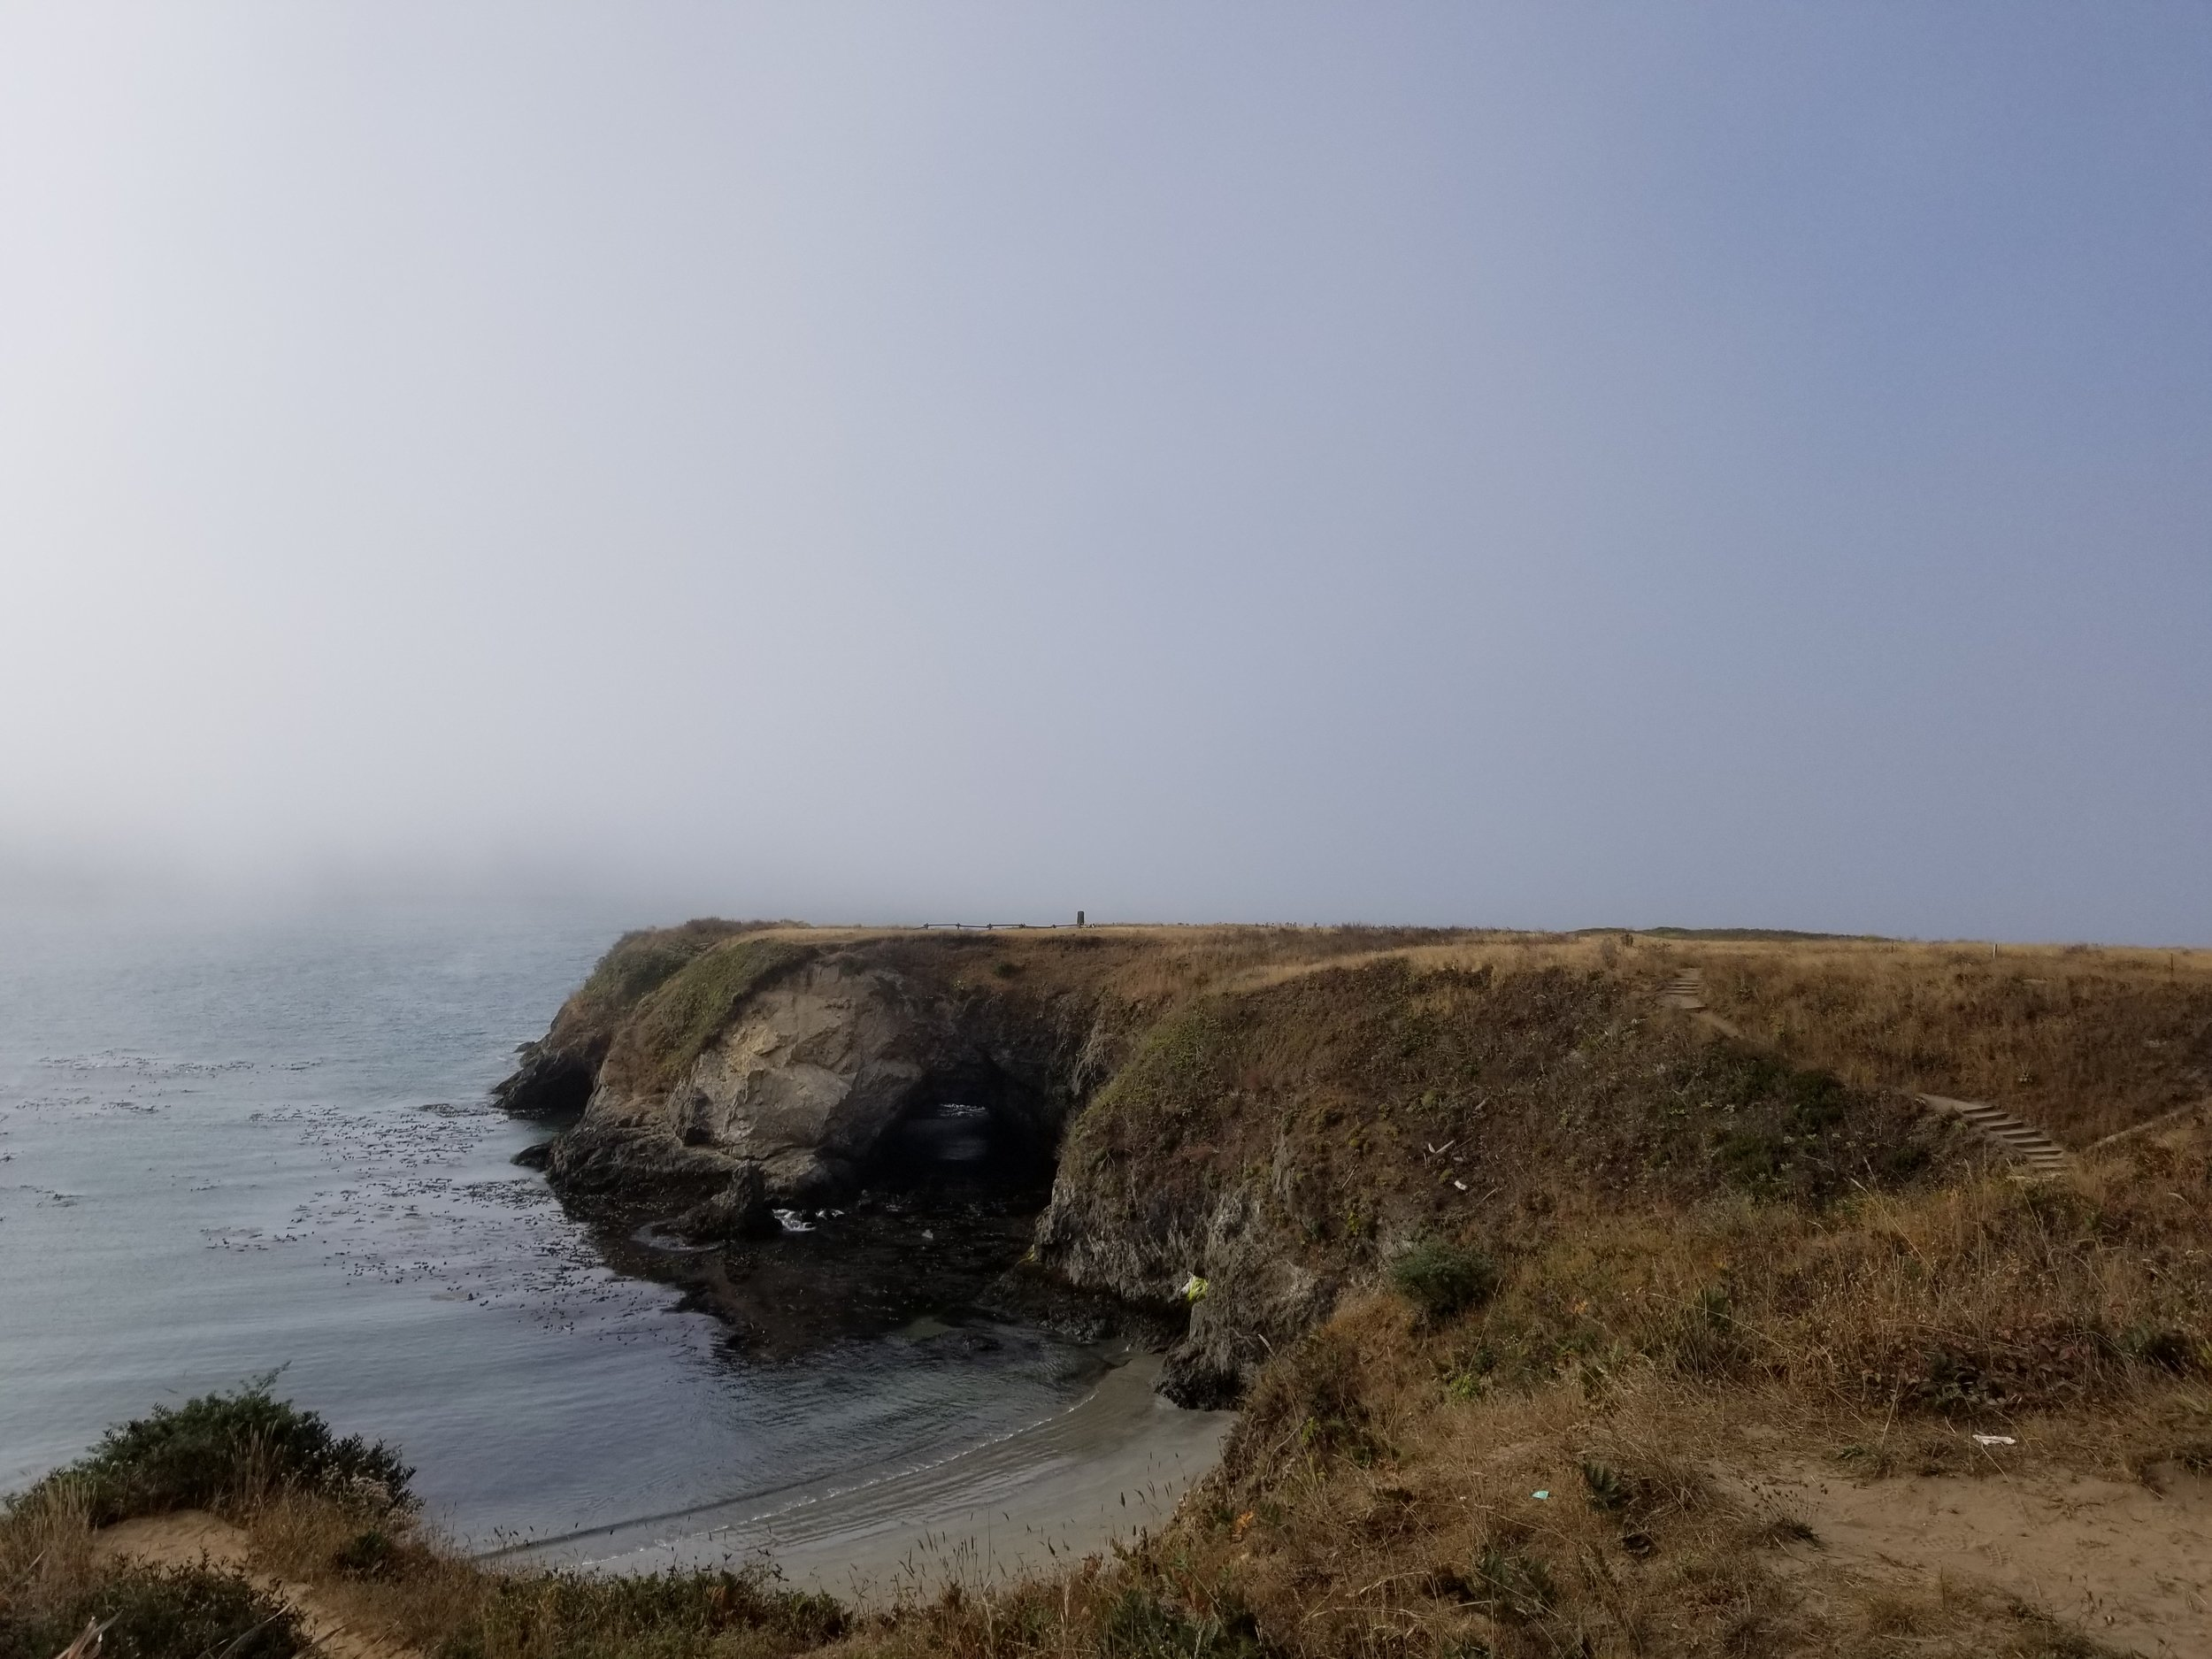 Mendocino offers many outdoor activities for fitness enthusiasts